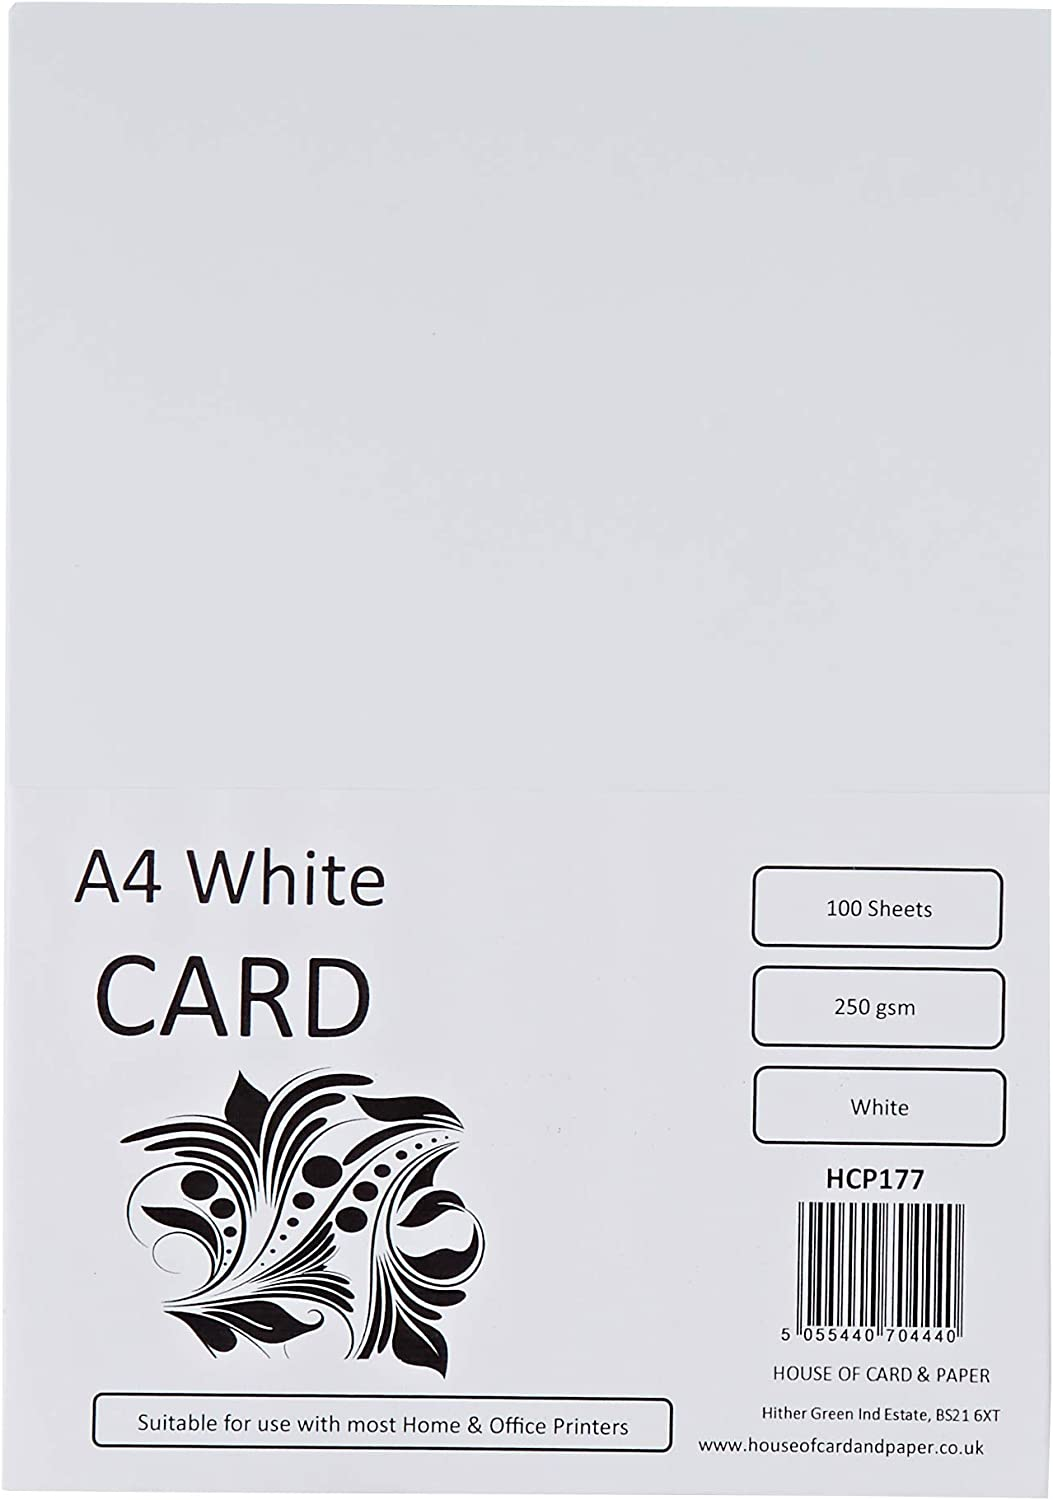 PAPER 250 gsm ALL PRINT INKJET LASER A4 SMOOTH HIGH WHITE PREMIUM QUALITY CARD